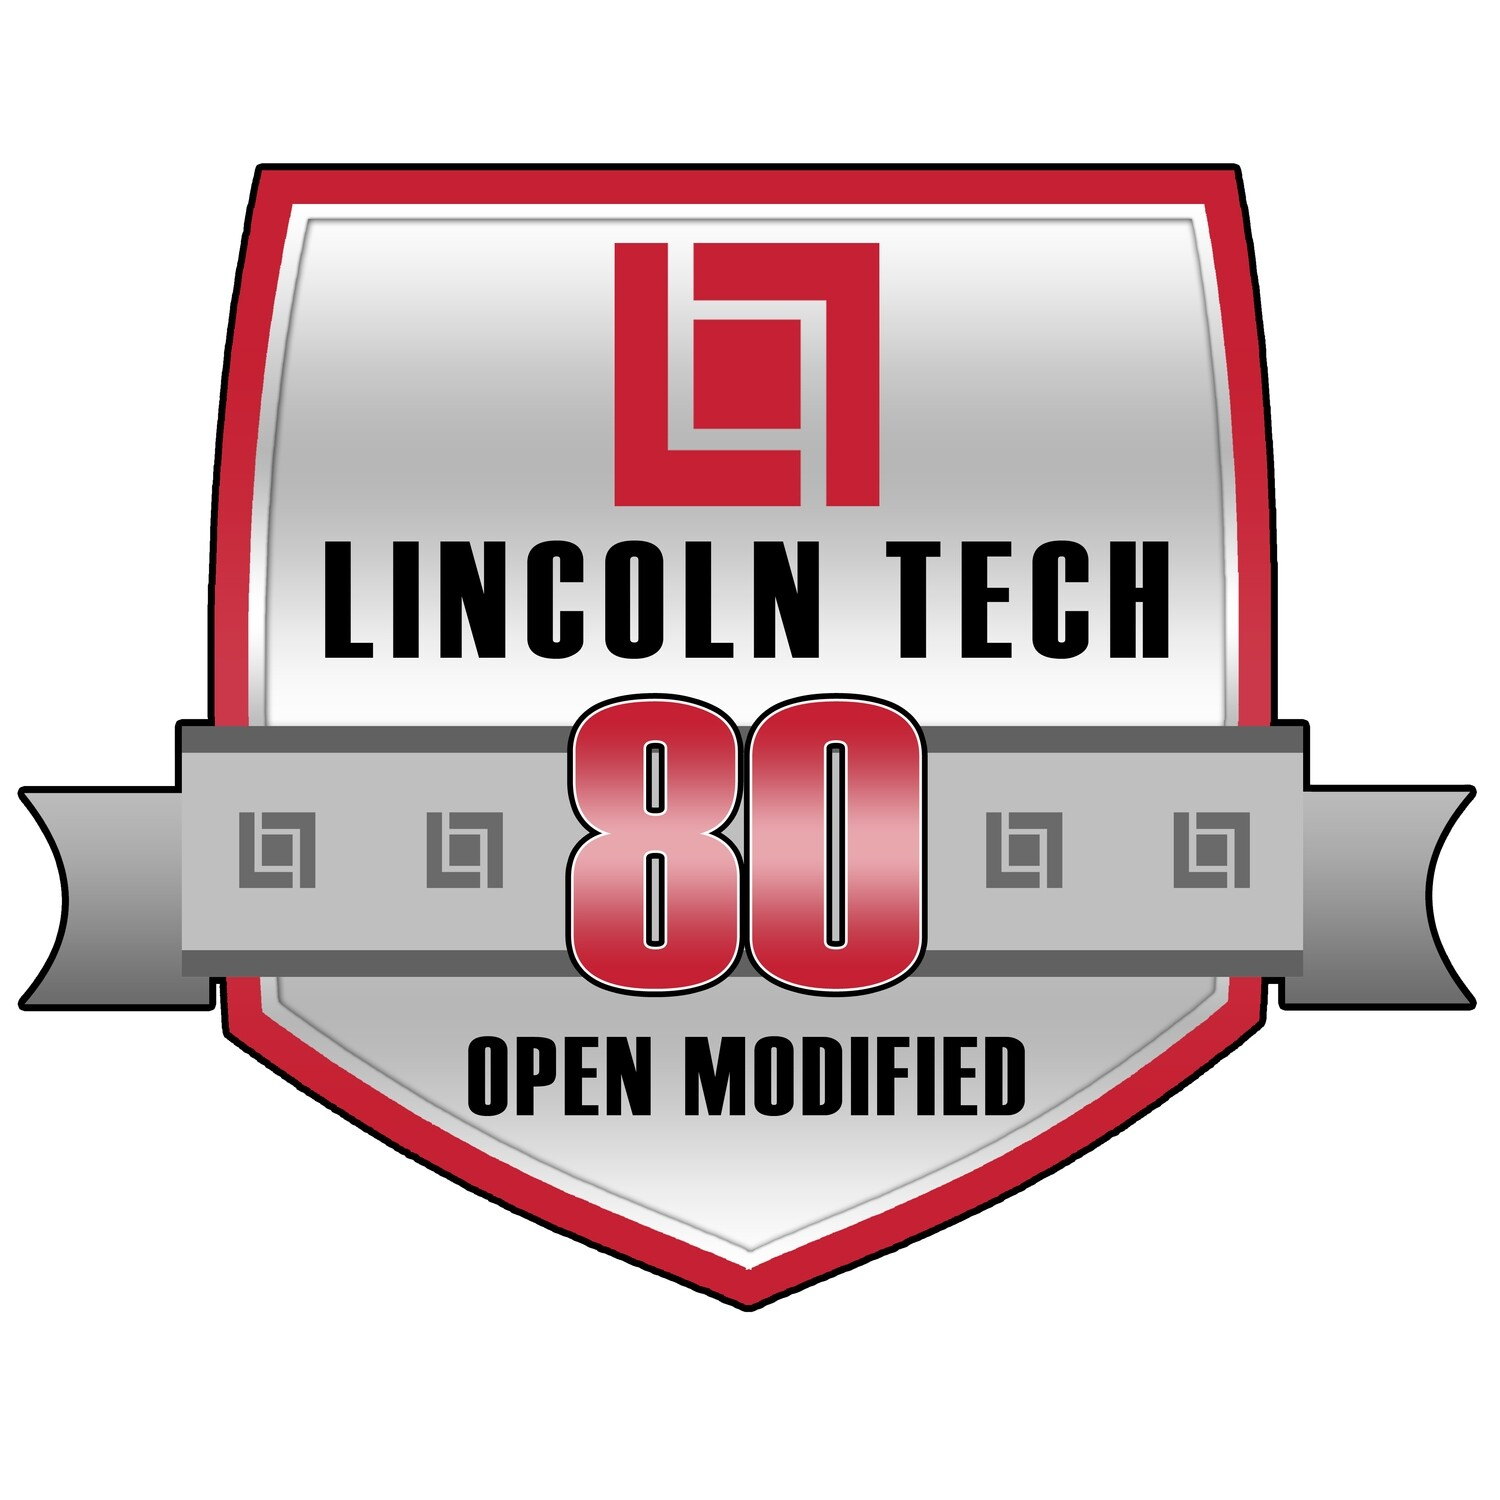 Lincoln Tech Open Modified 80 - August 21st